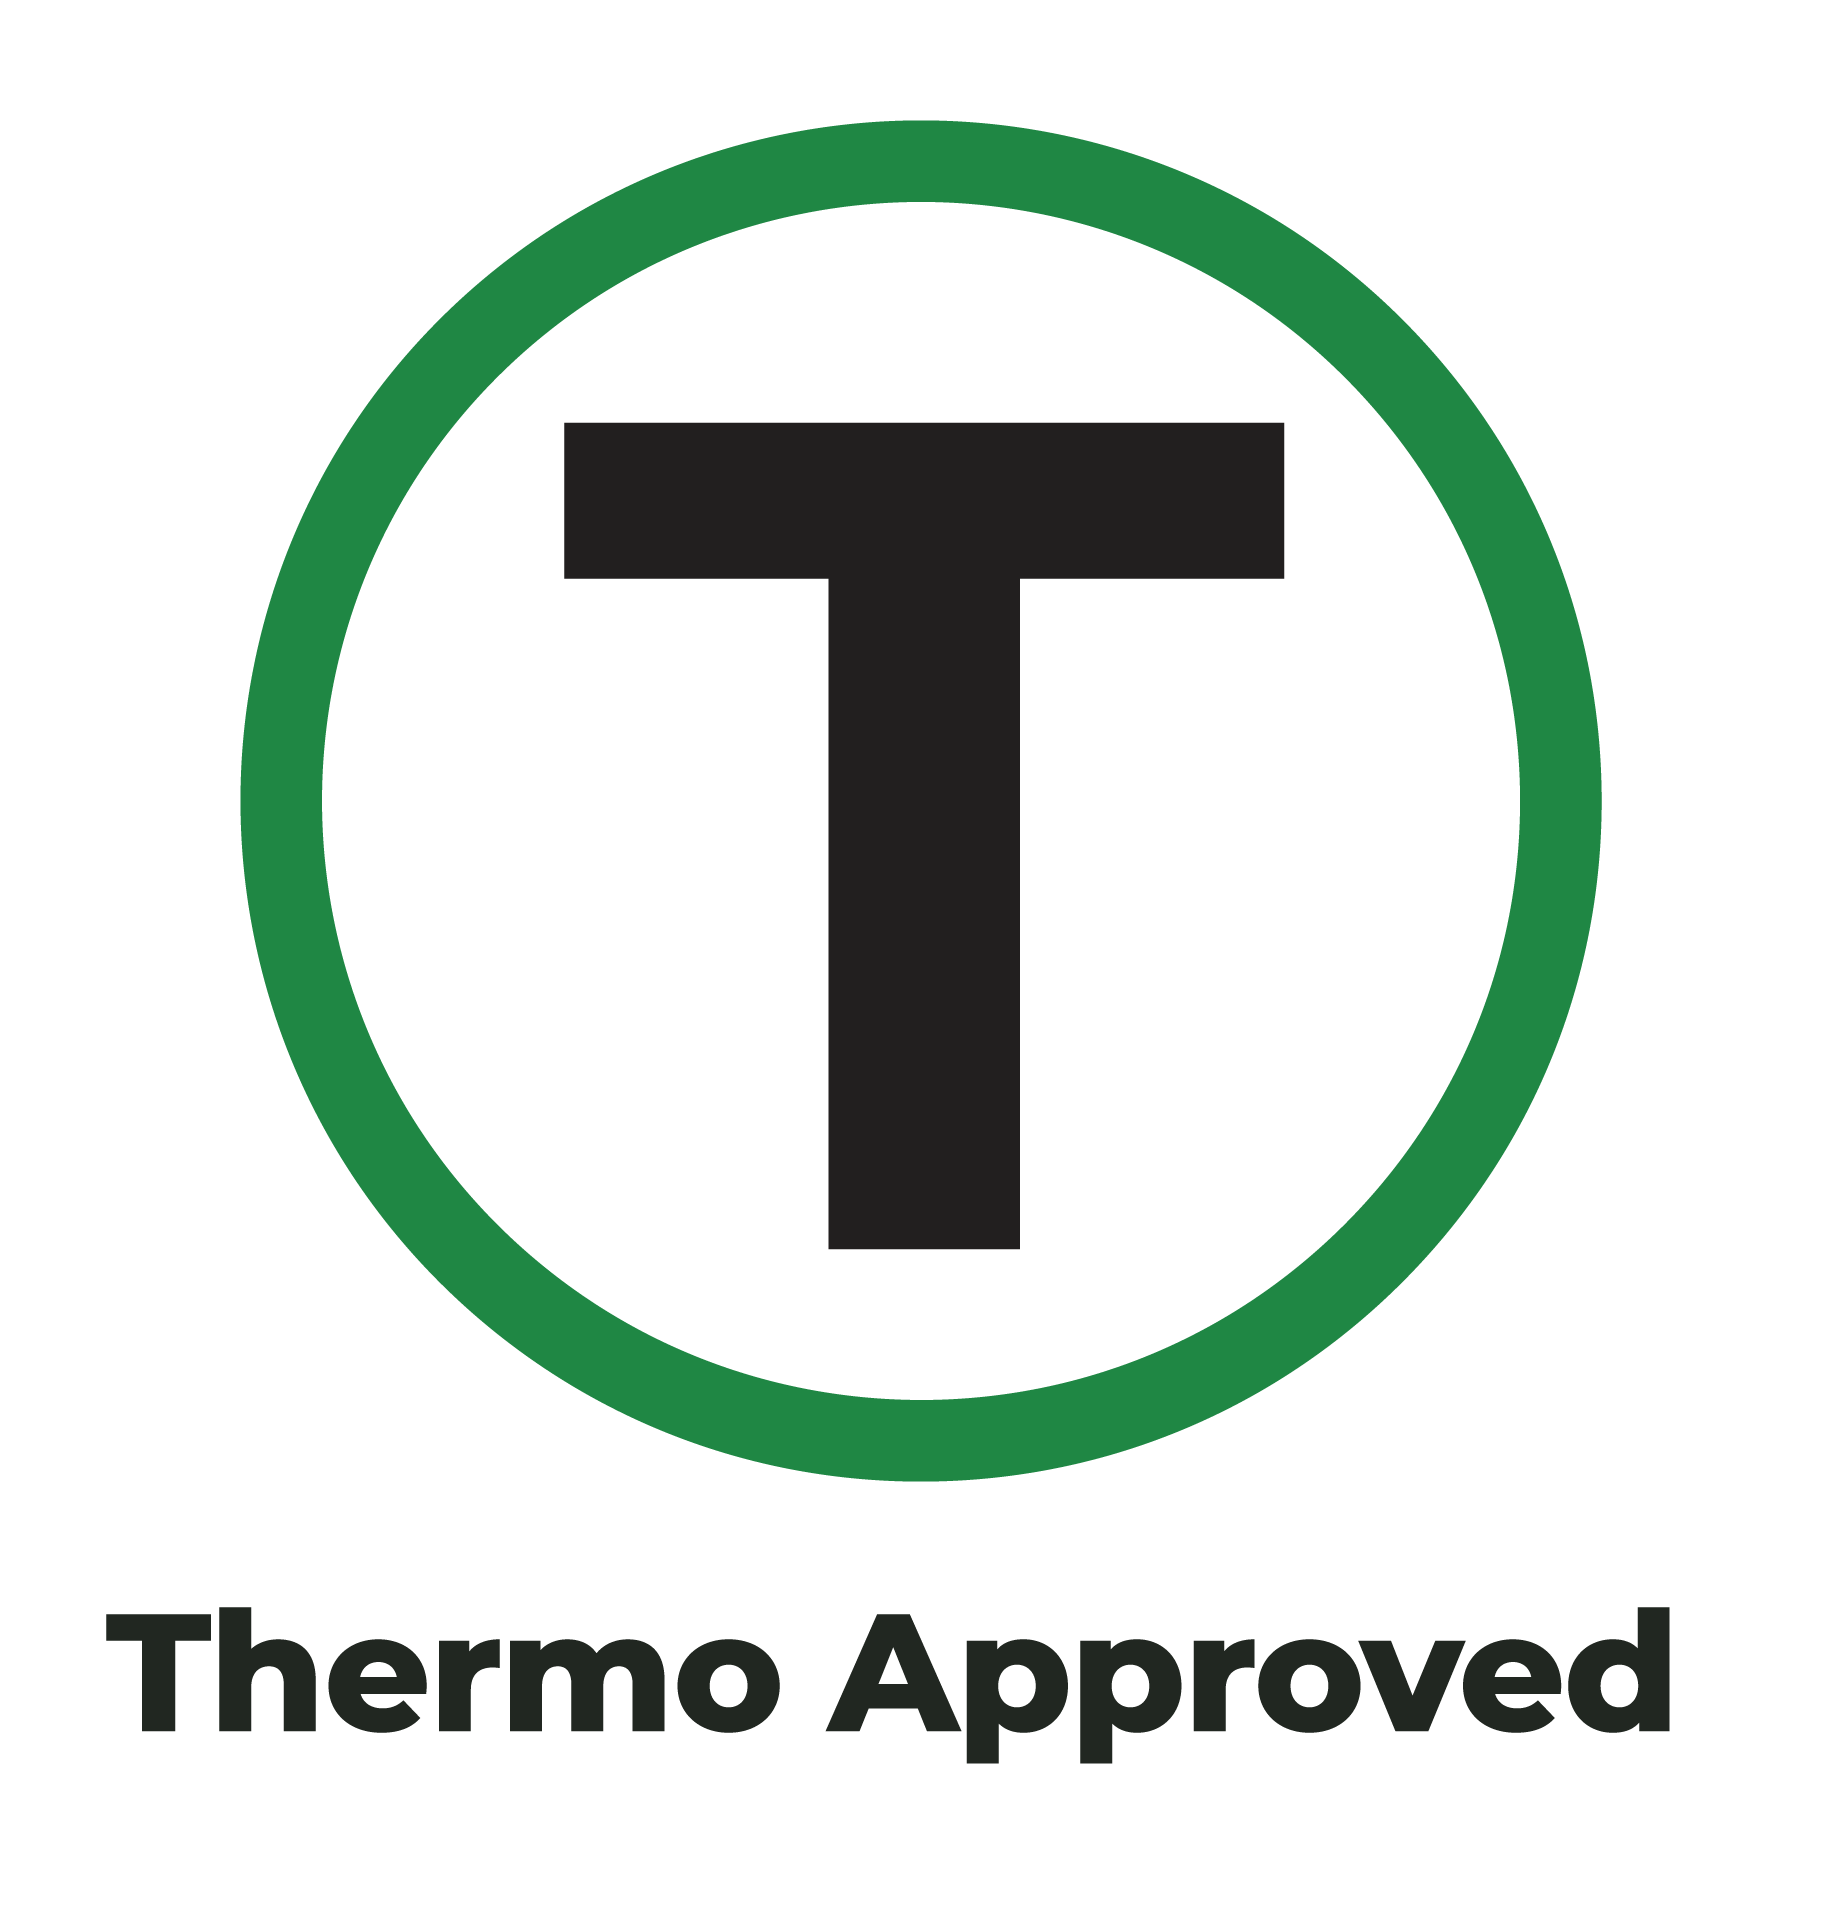 TC-ThermoApproved-01